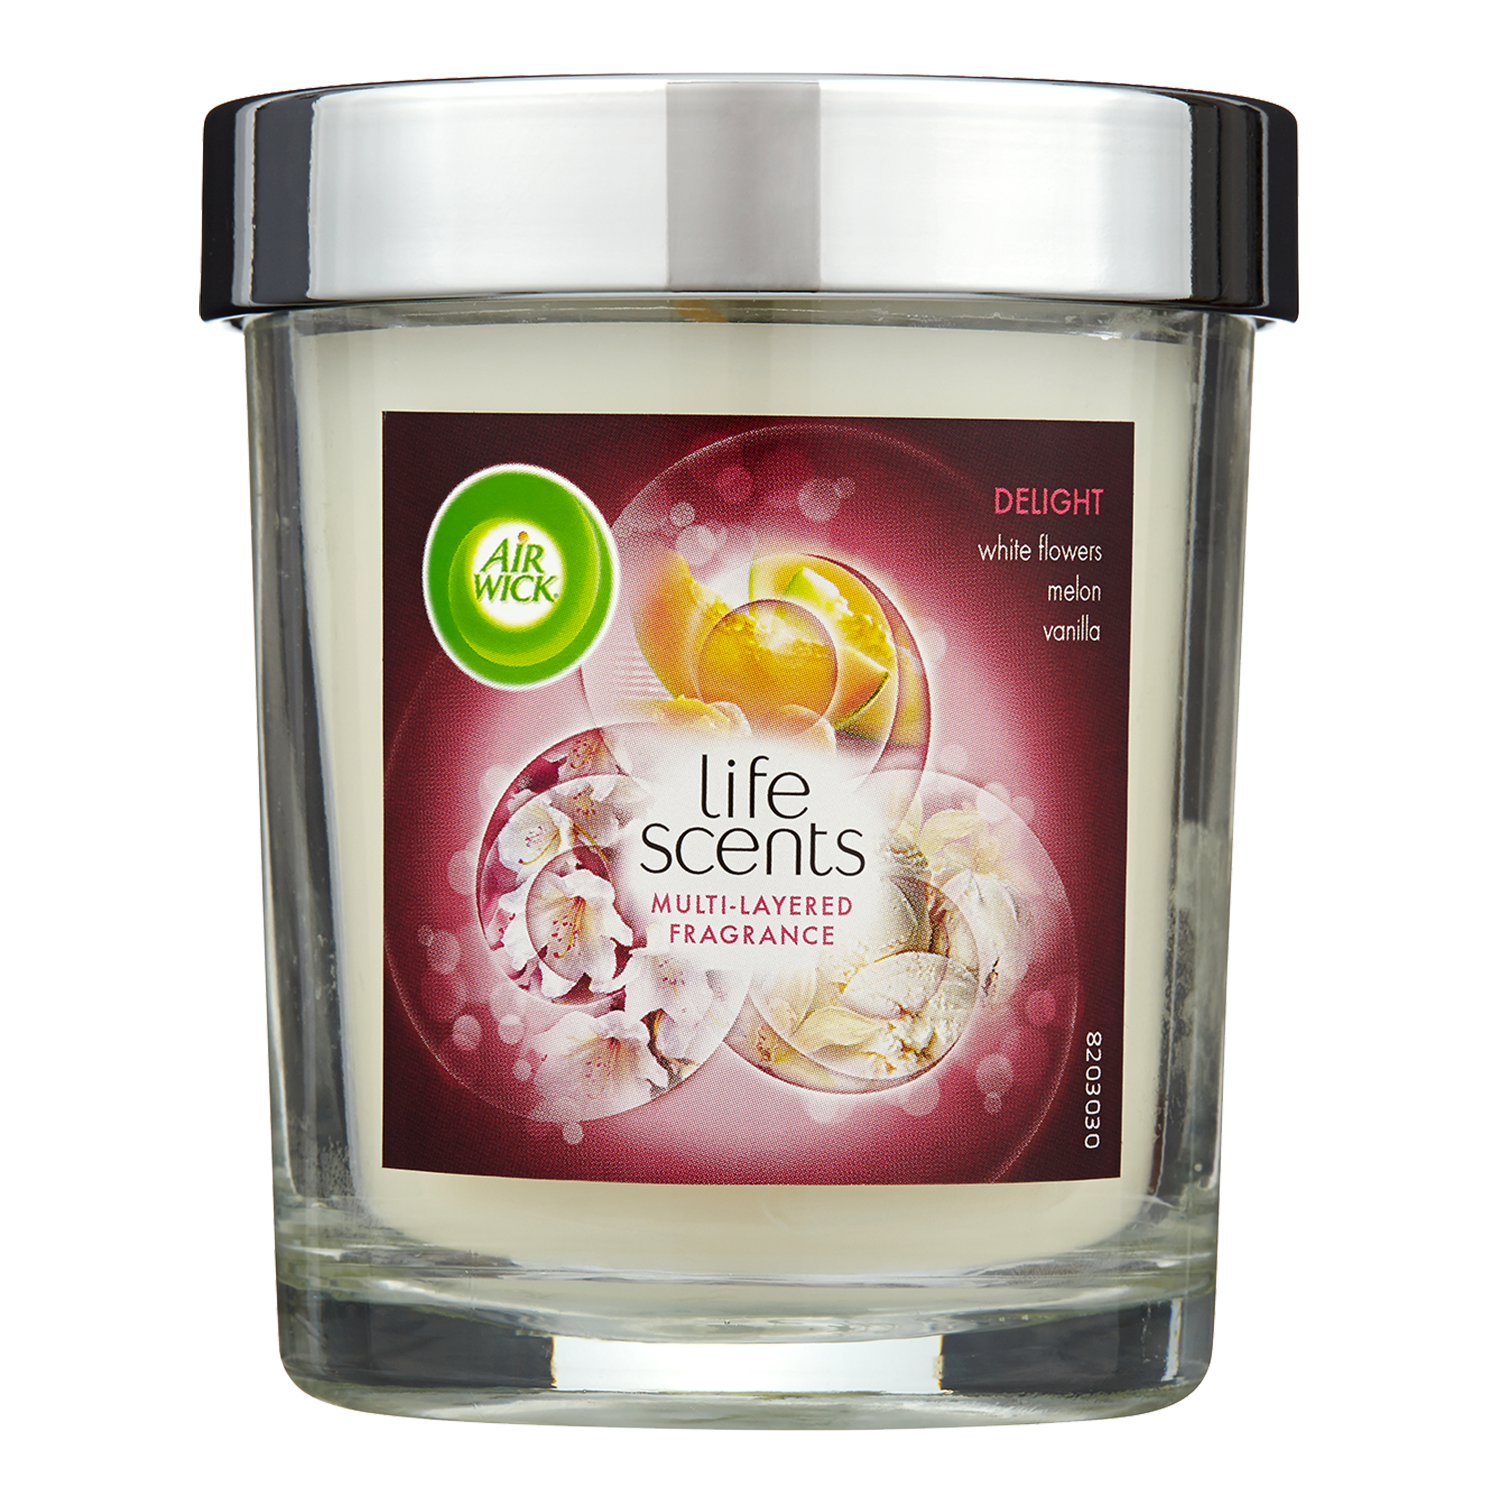 Air Wick Candle Life Scents Delight